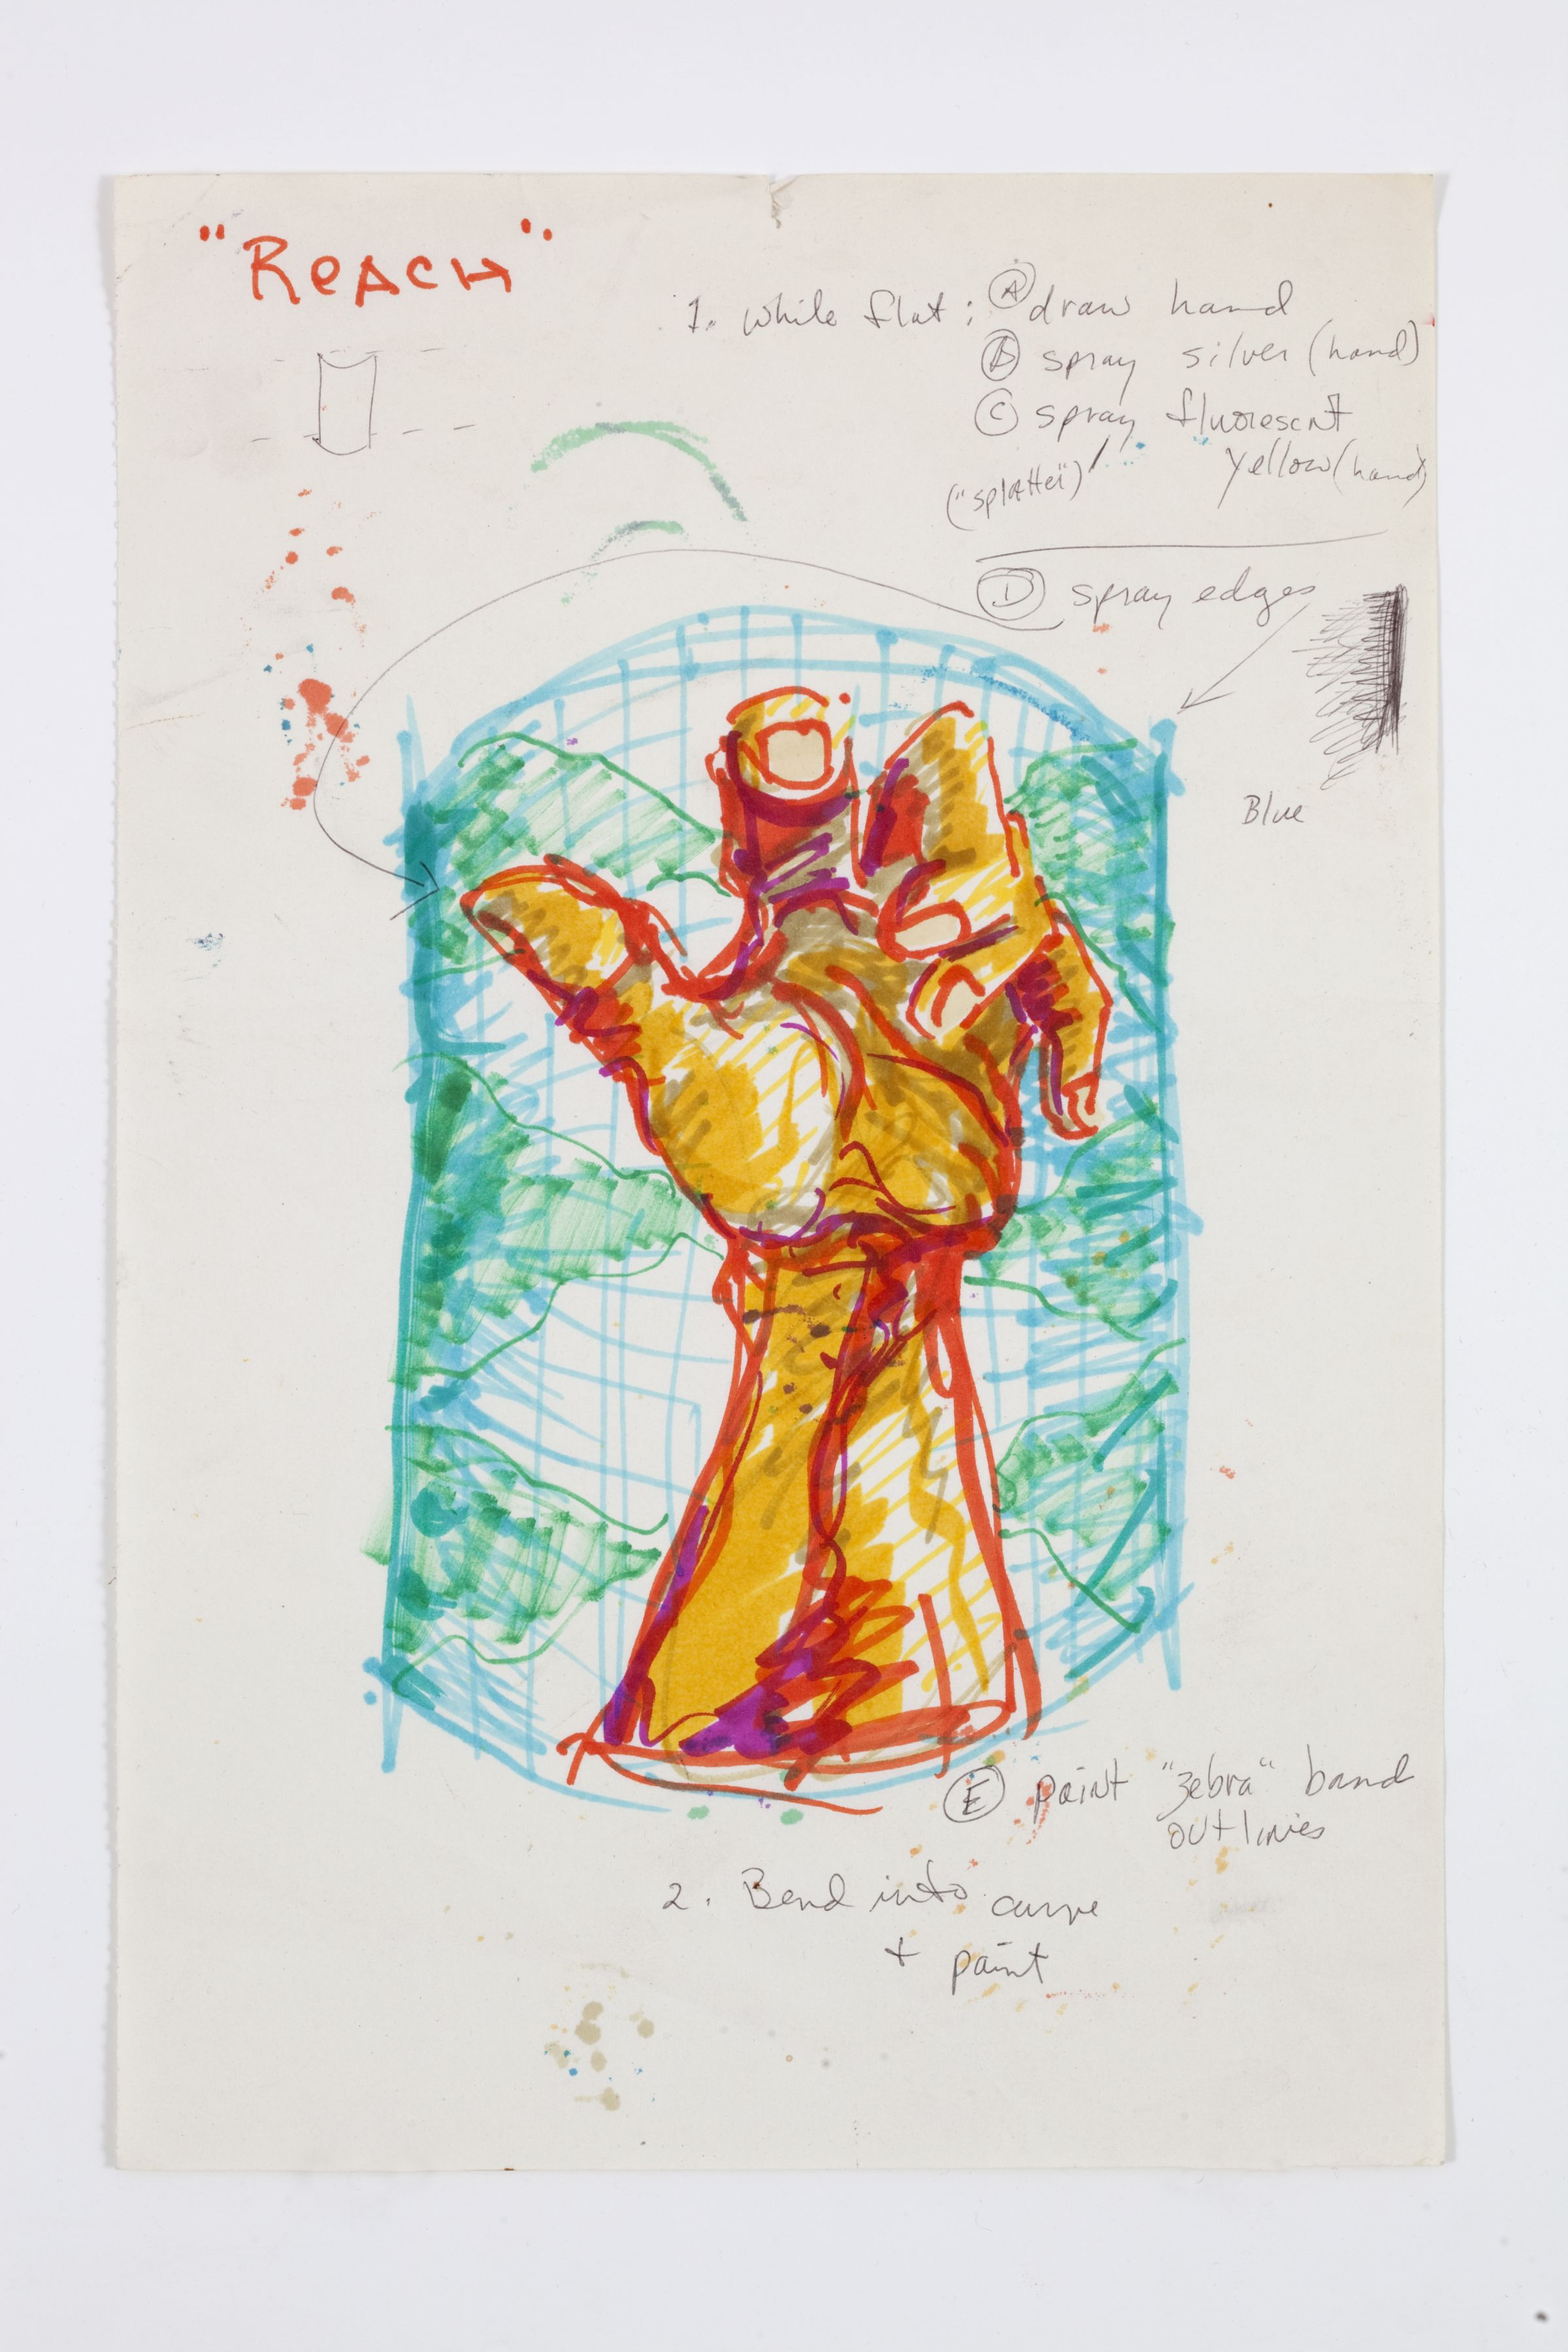 Paul Sharits, Reach, mixed media on paper, 11 1/2 x 7 3/4 inches